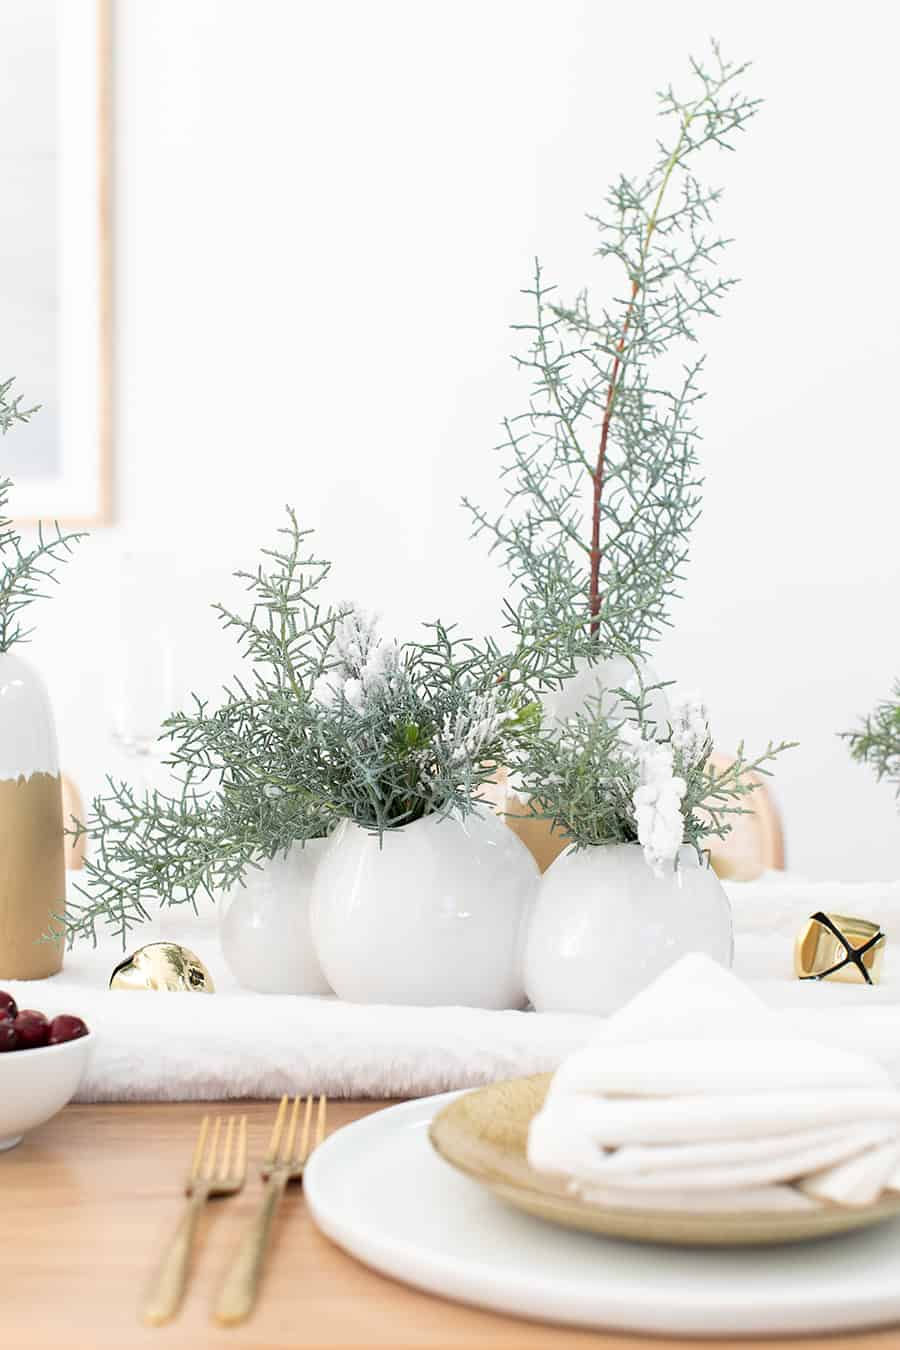 White vases filled with winter greens.